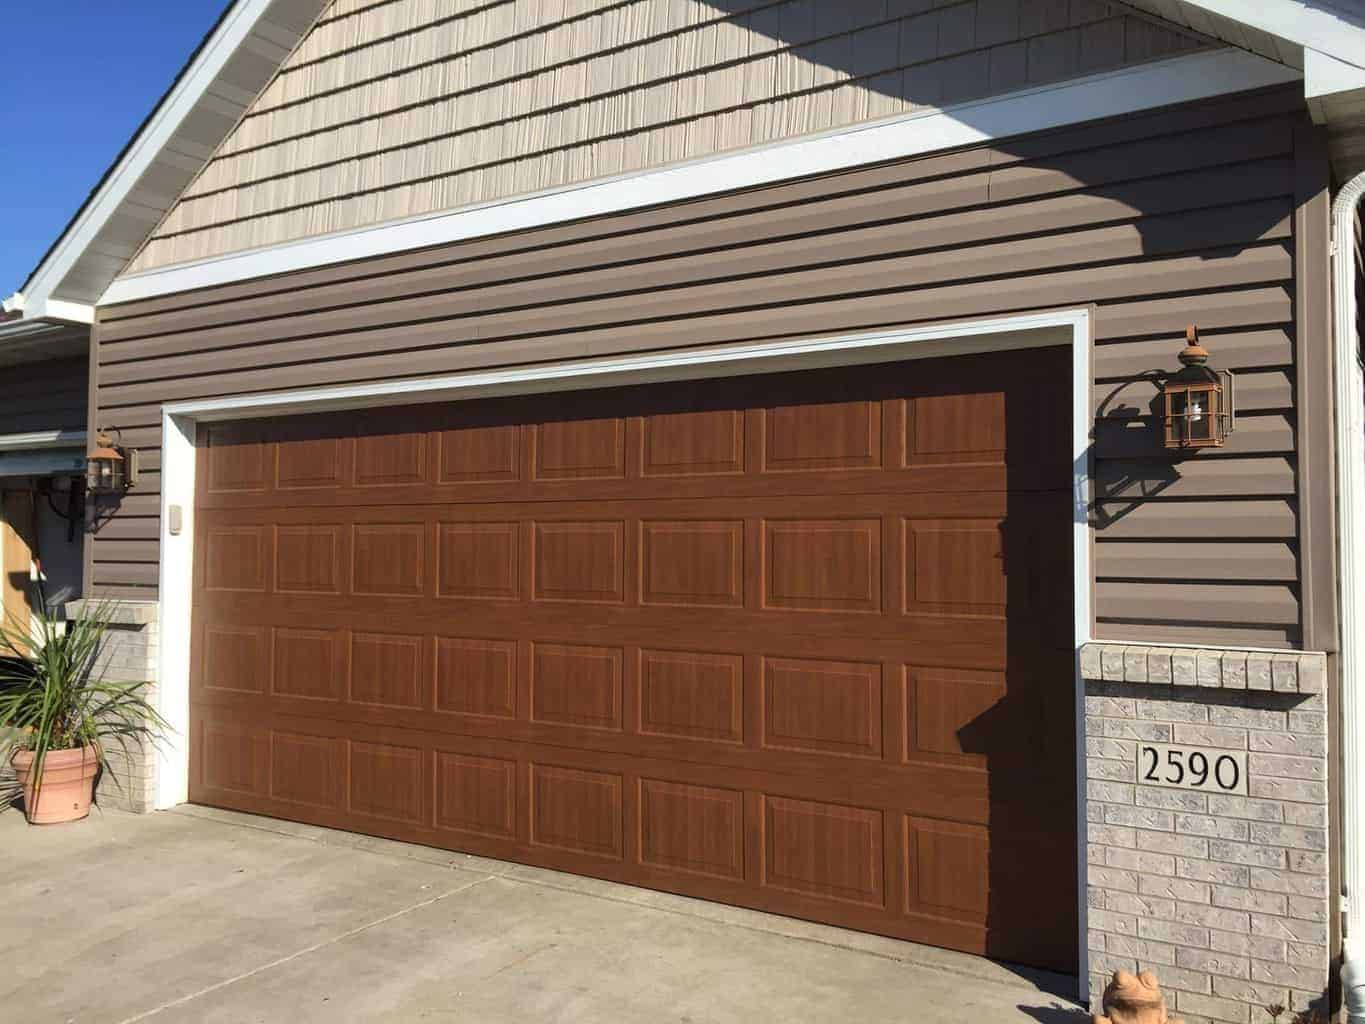 Overhead doors for business garage doors for home for Garage door repair st louis mo